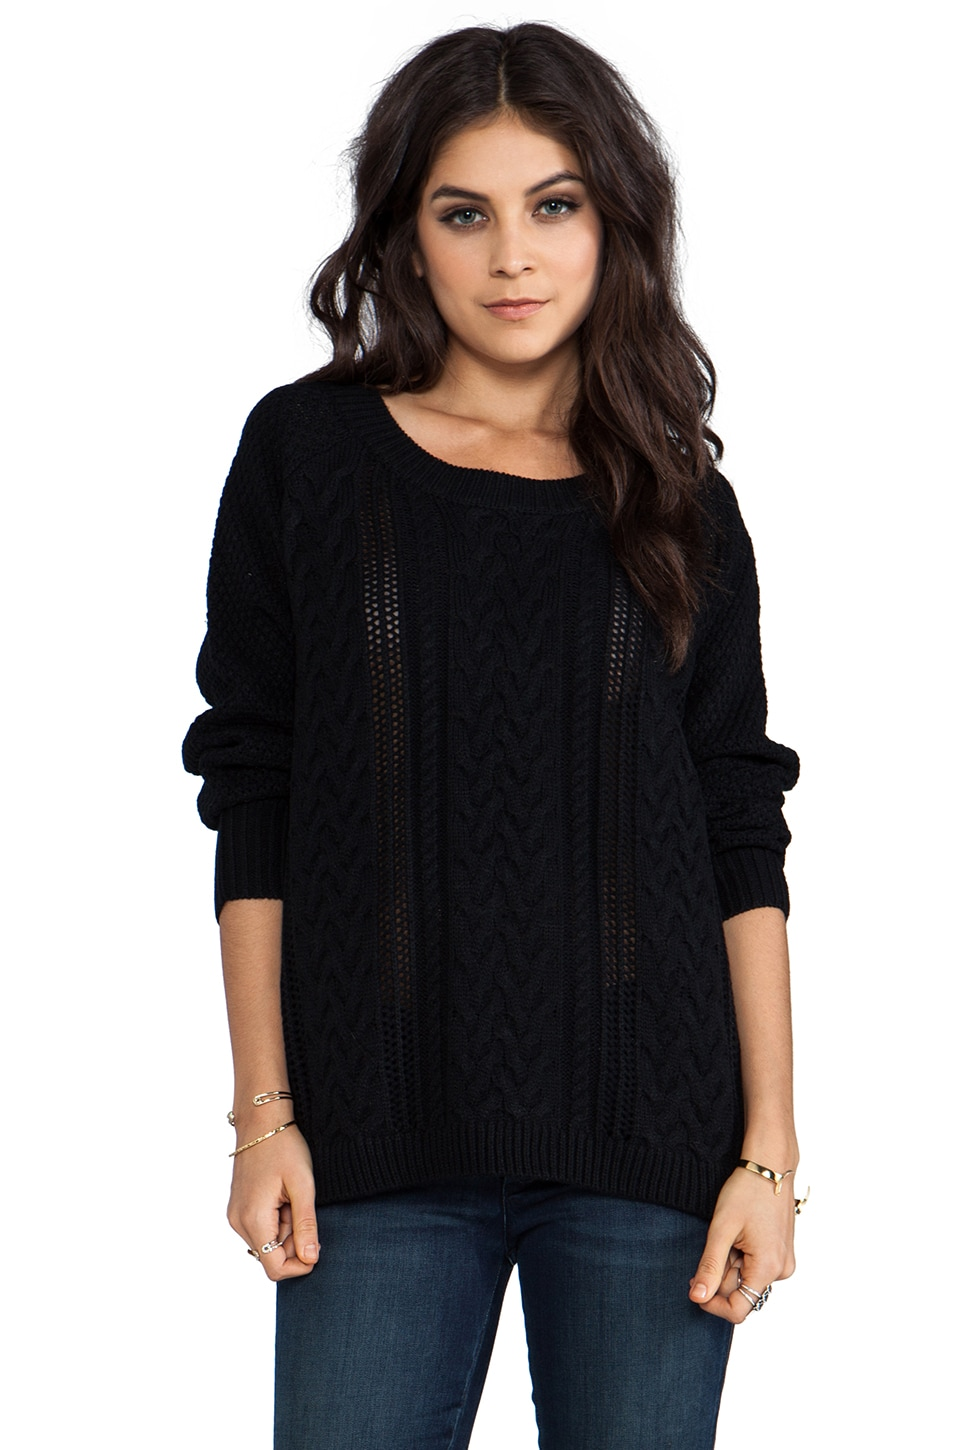 Lovers + Friends So Good Sweater in Black